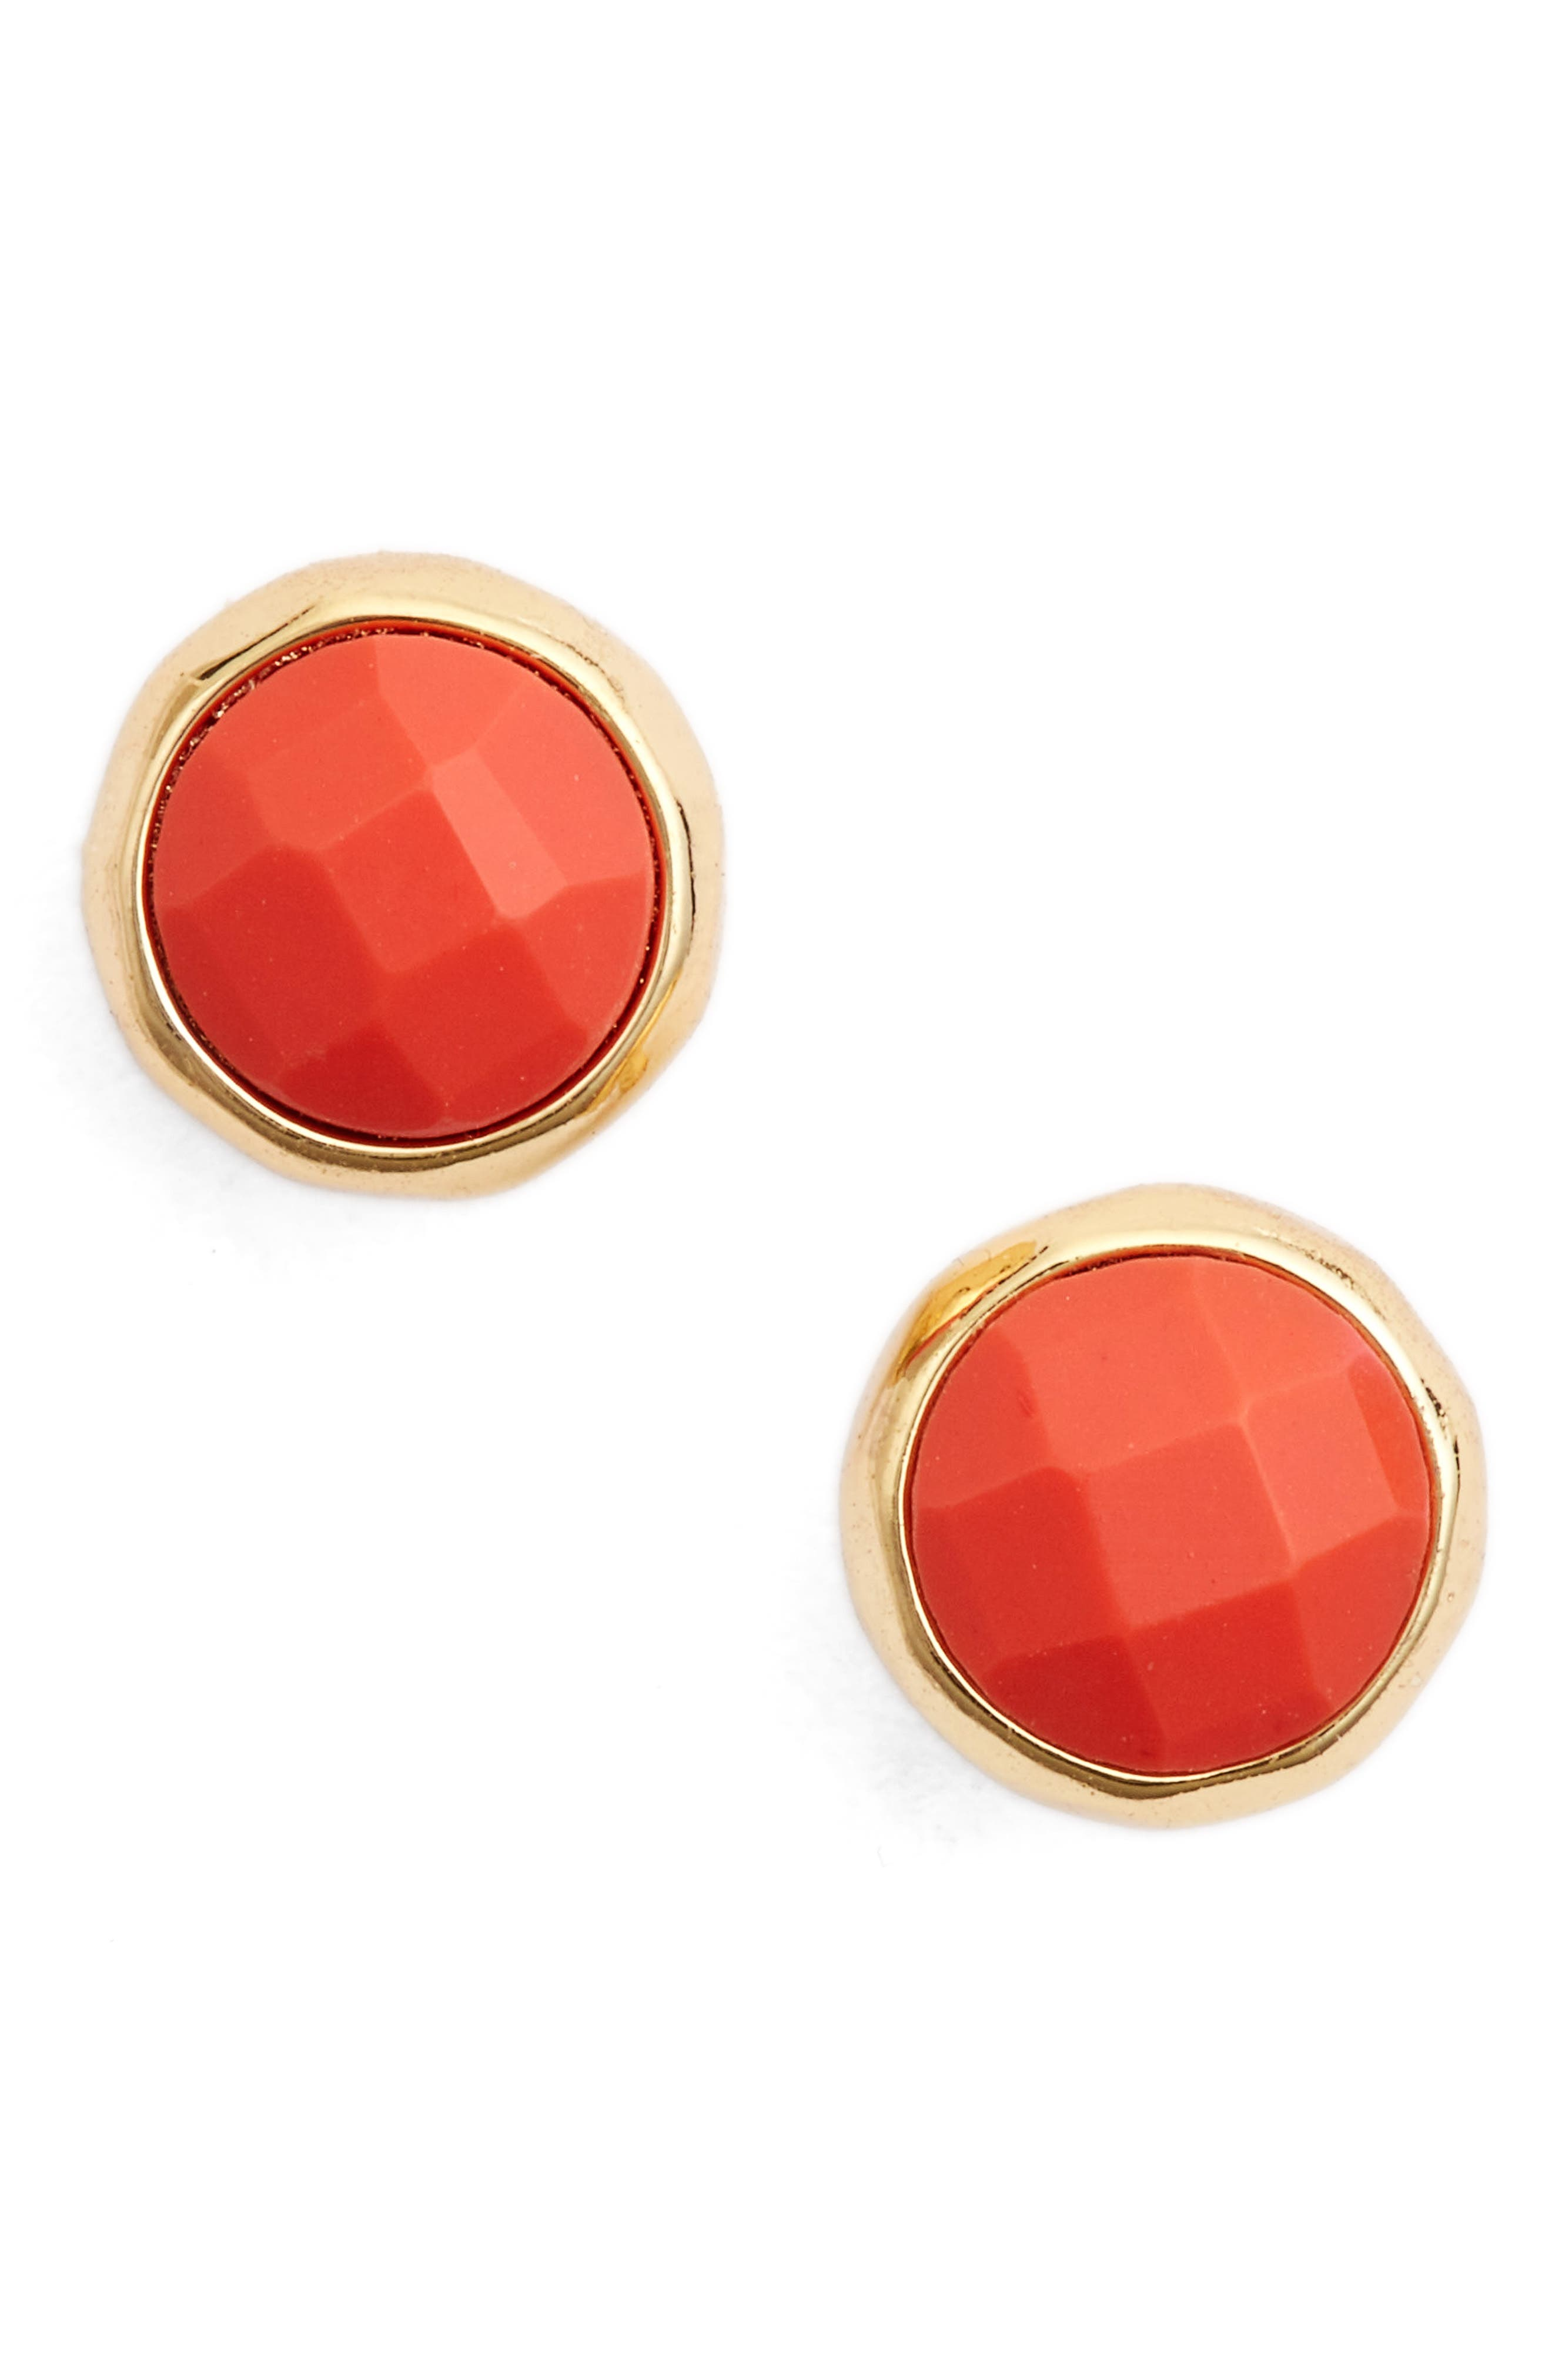 Harmony Stud Earrings,                             Main thumbnail 1, color,                             Pink Coral/ Gold